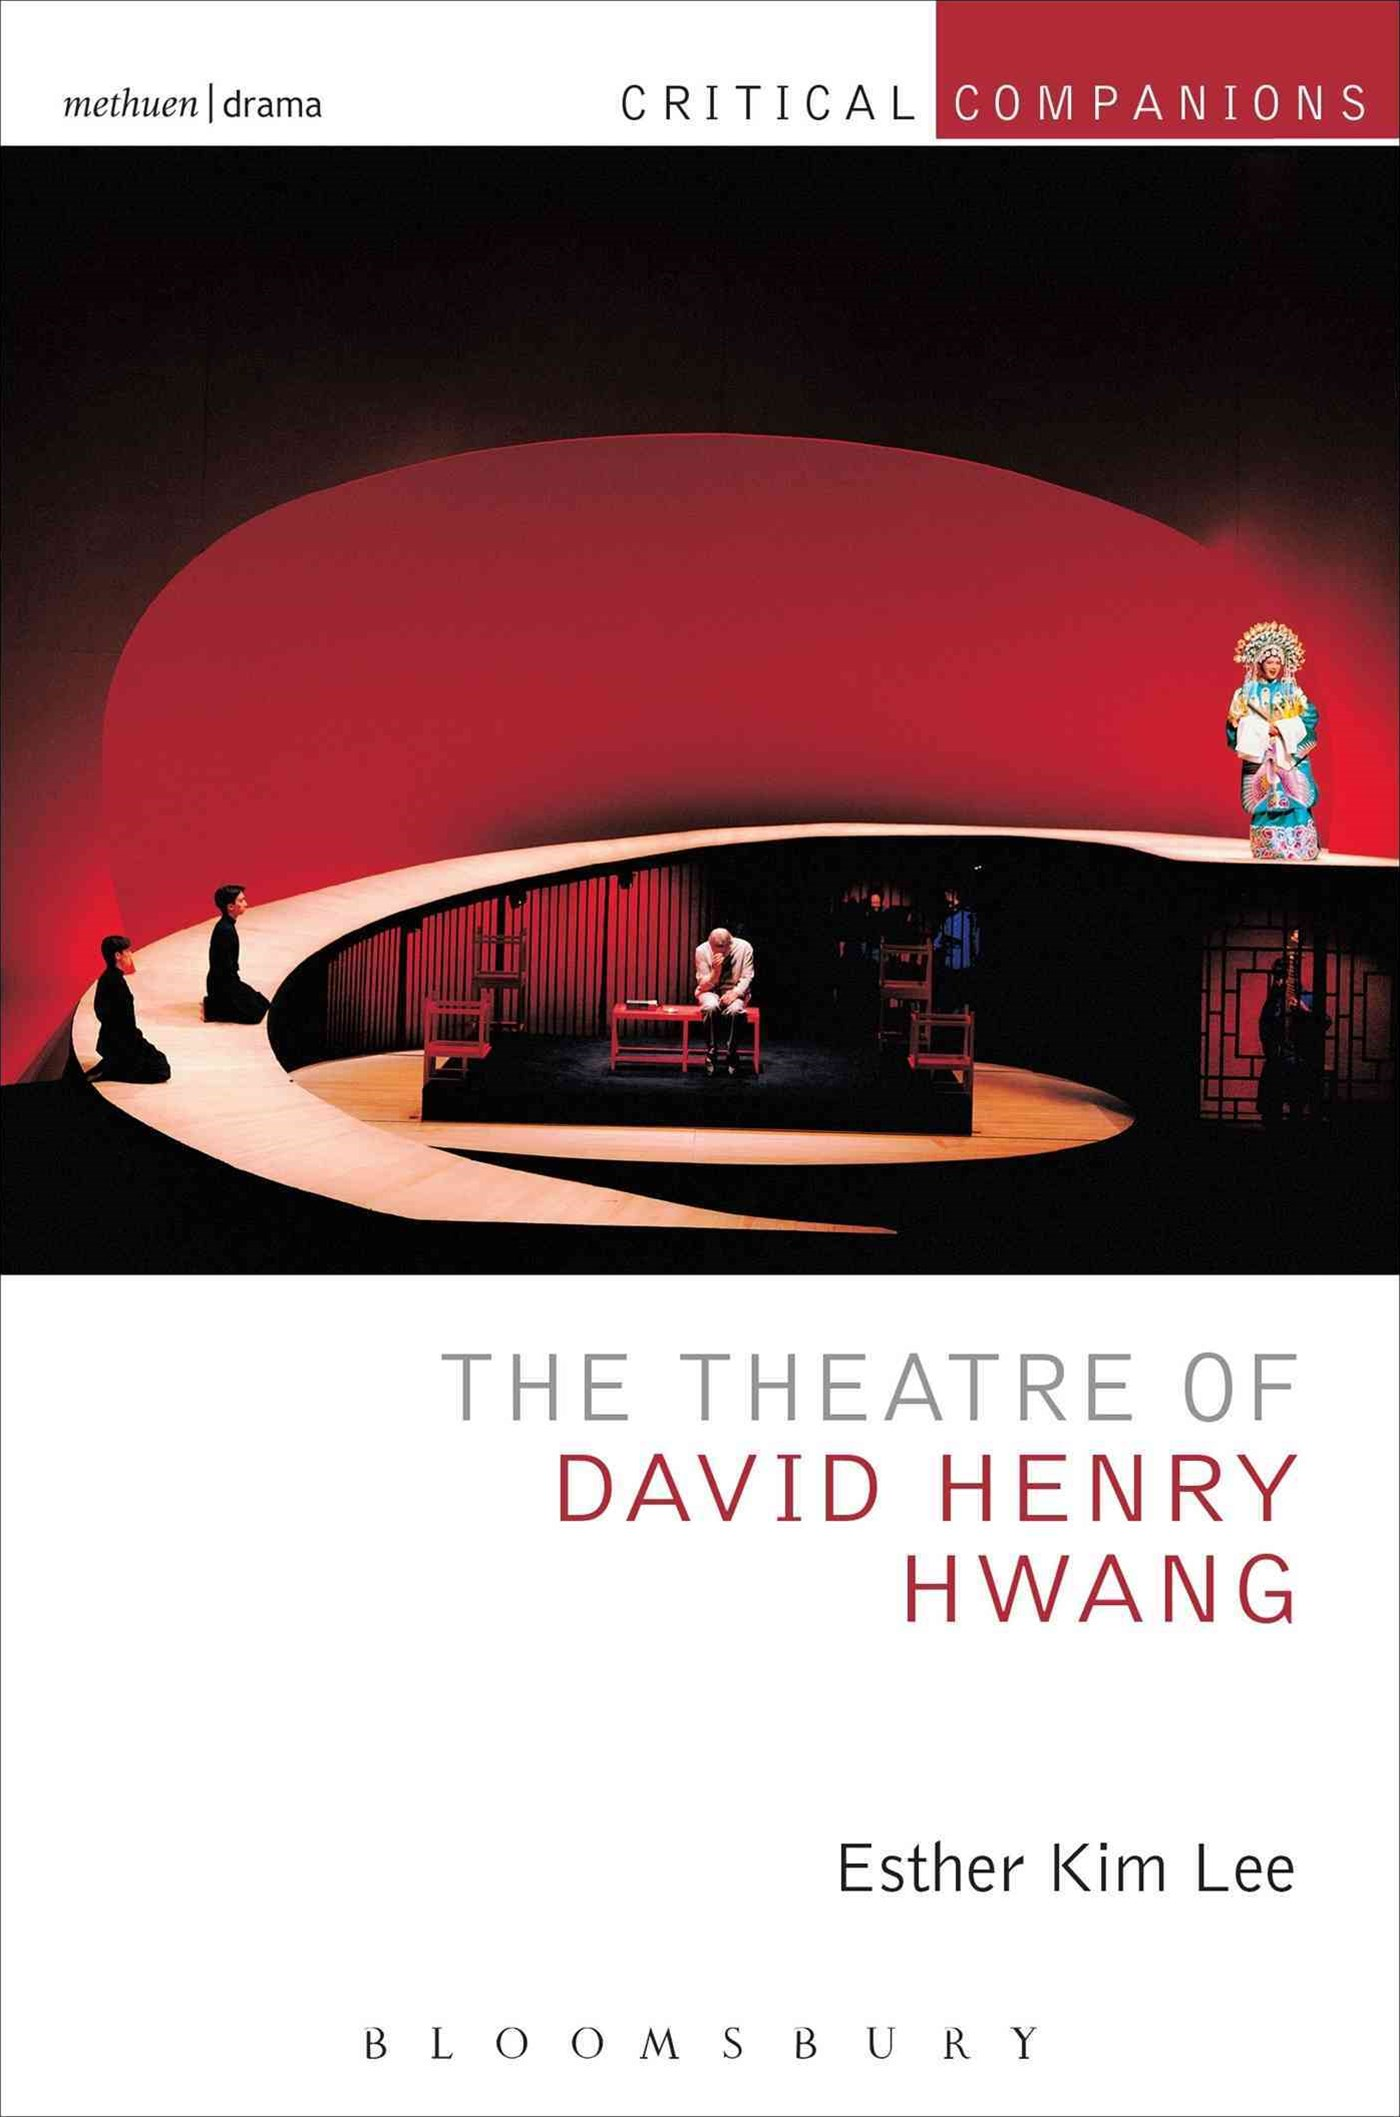 Theatre of David Henry Hwang